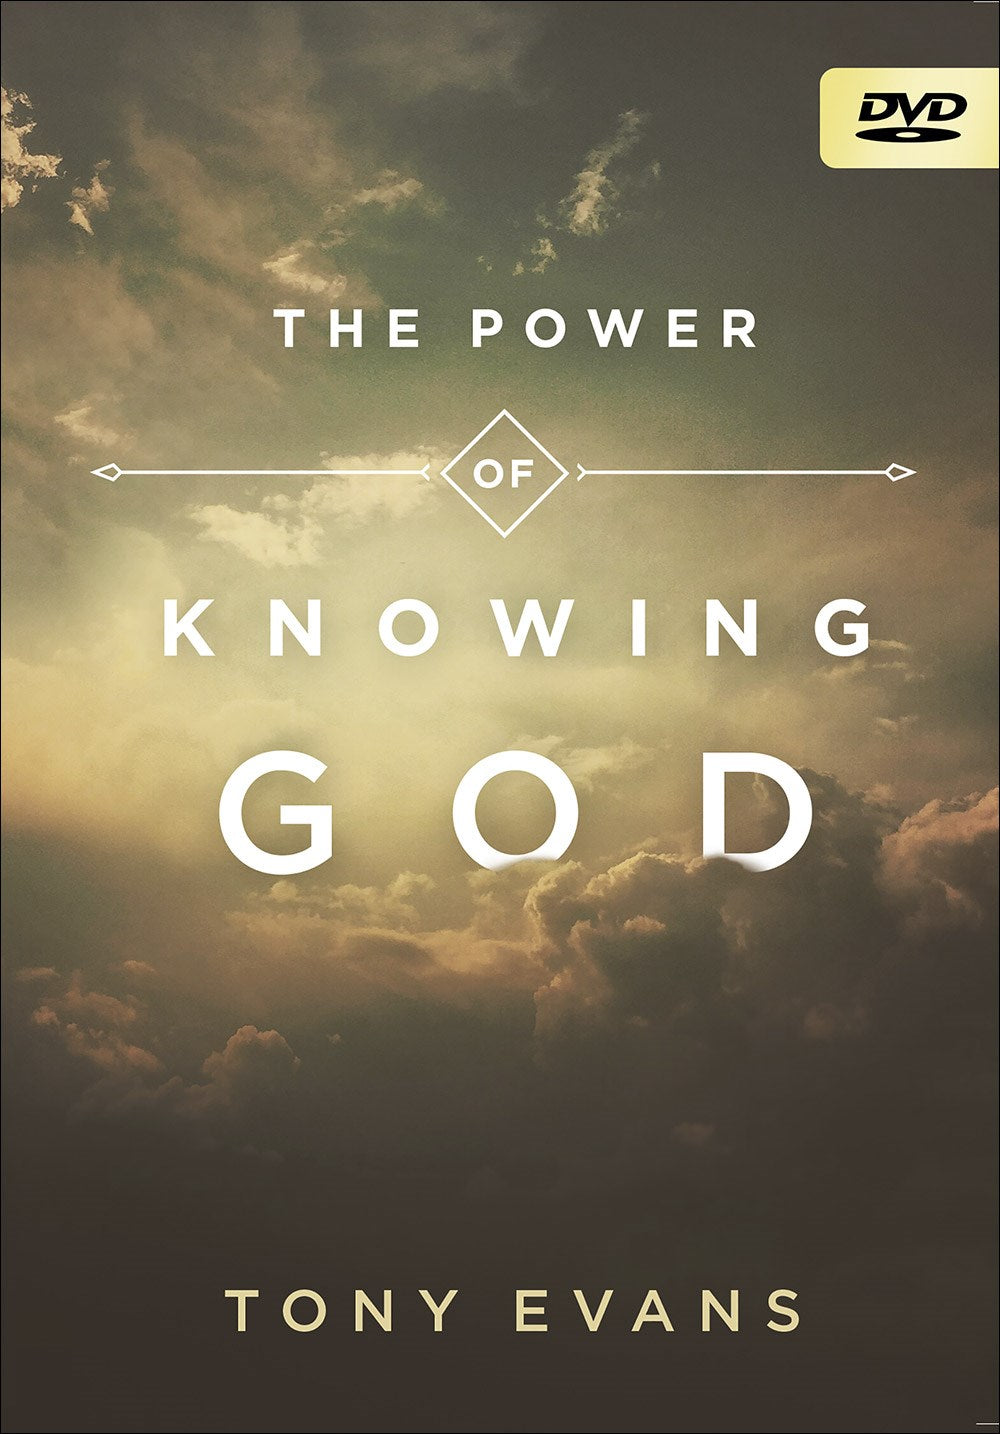 DVD-The Power Of Knowing God